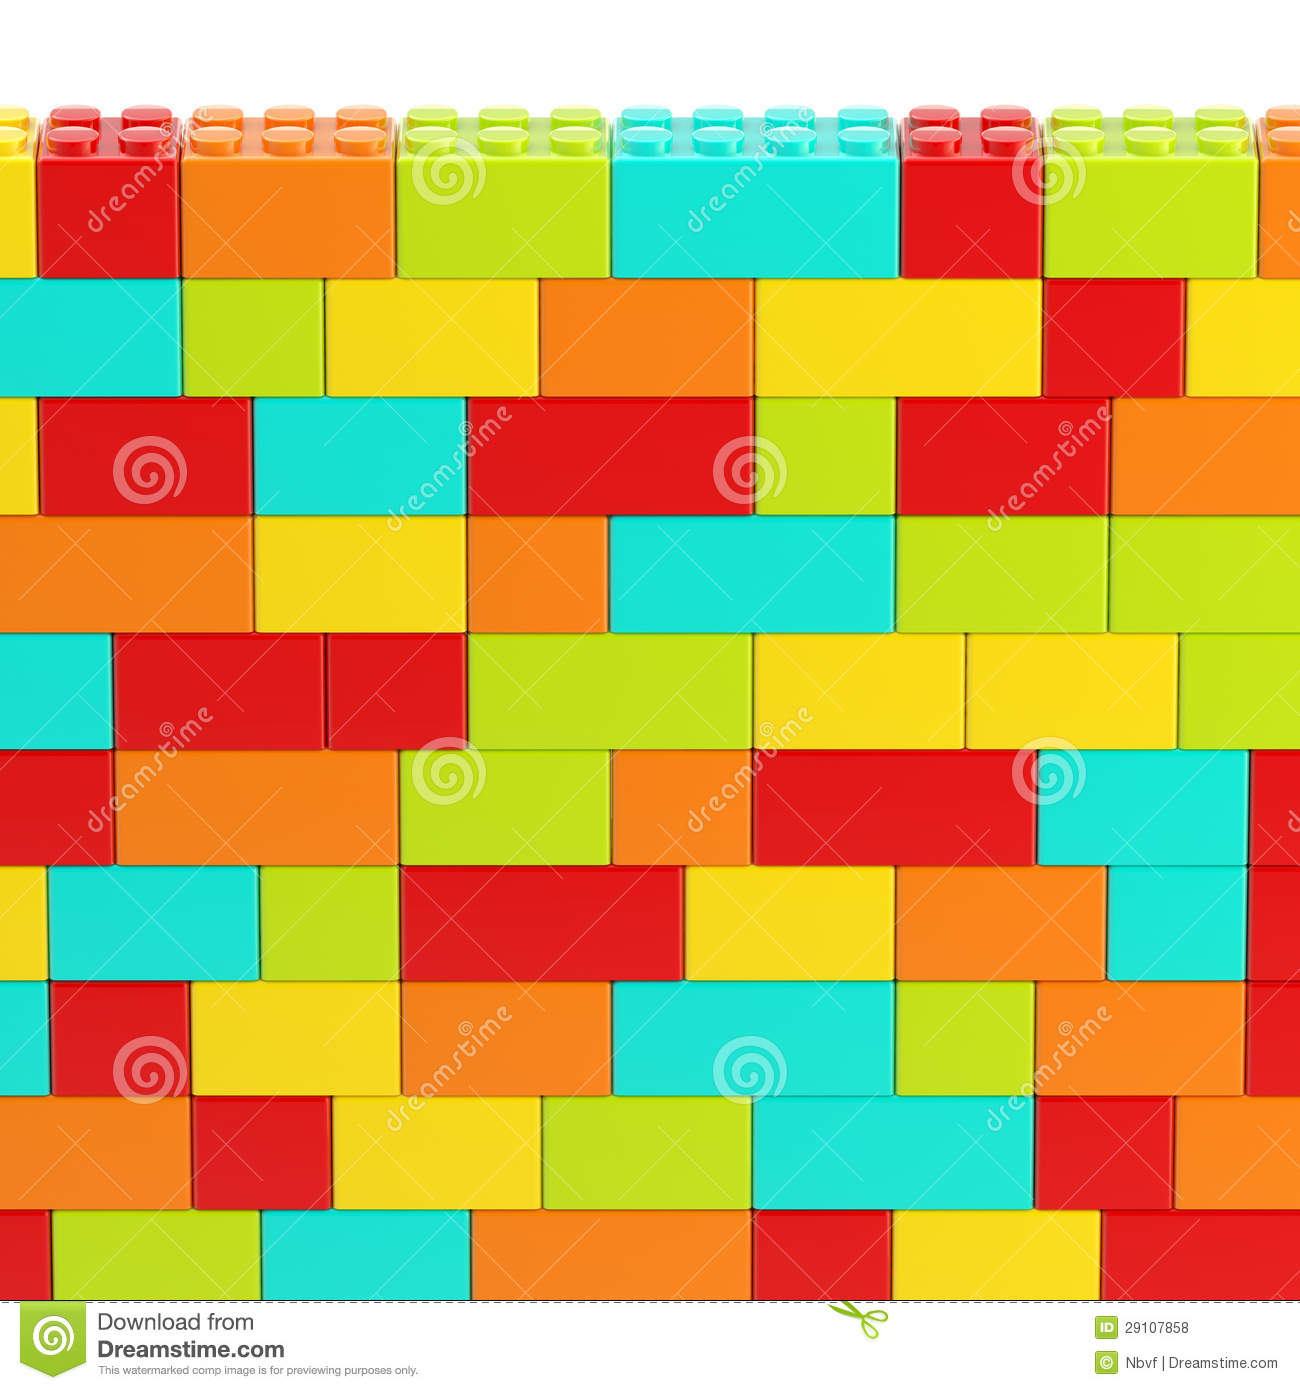 Background Wall Made Of Toy Blocks Royalty Free Stock Photos - Image ...